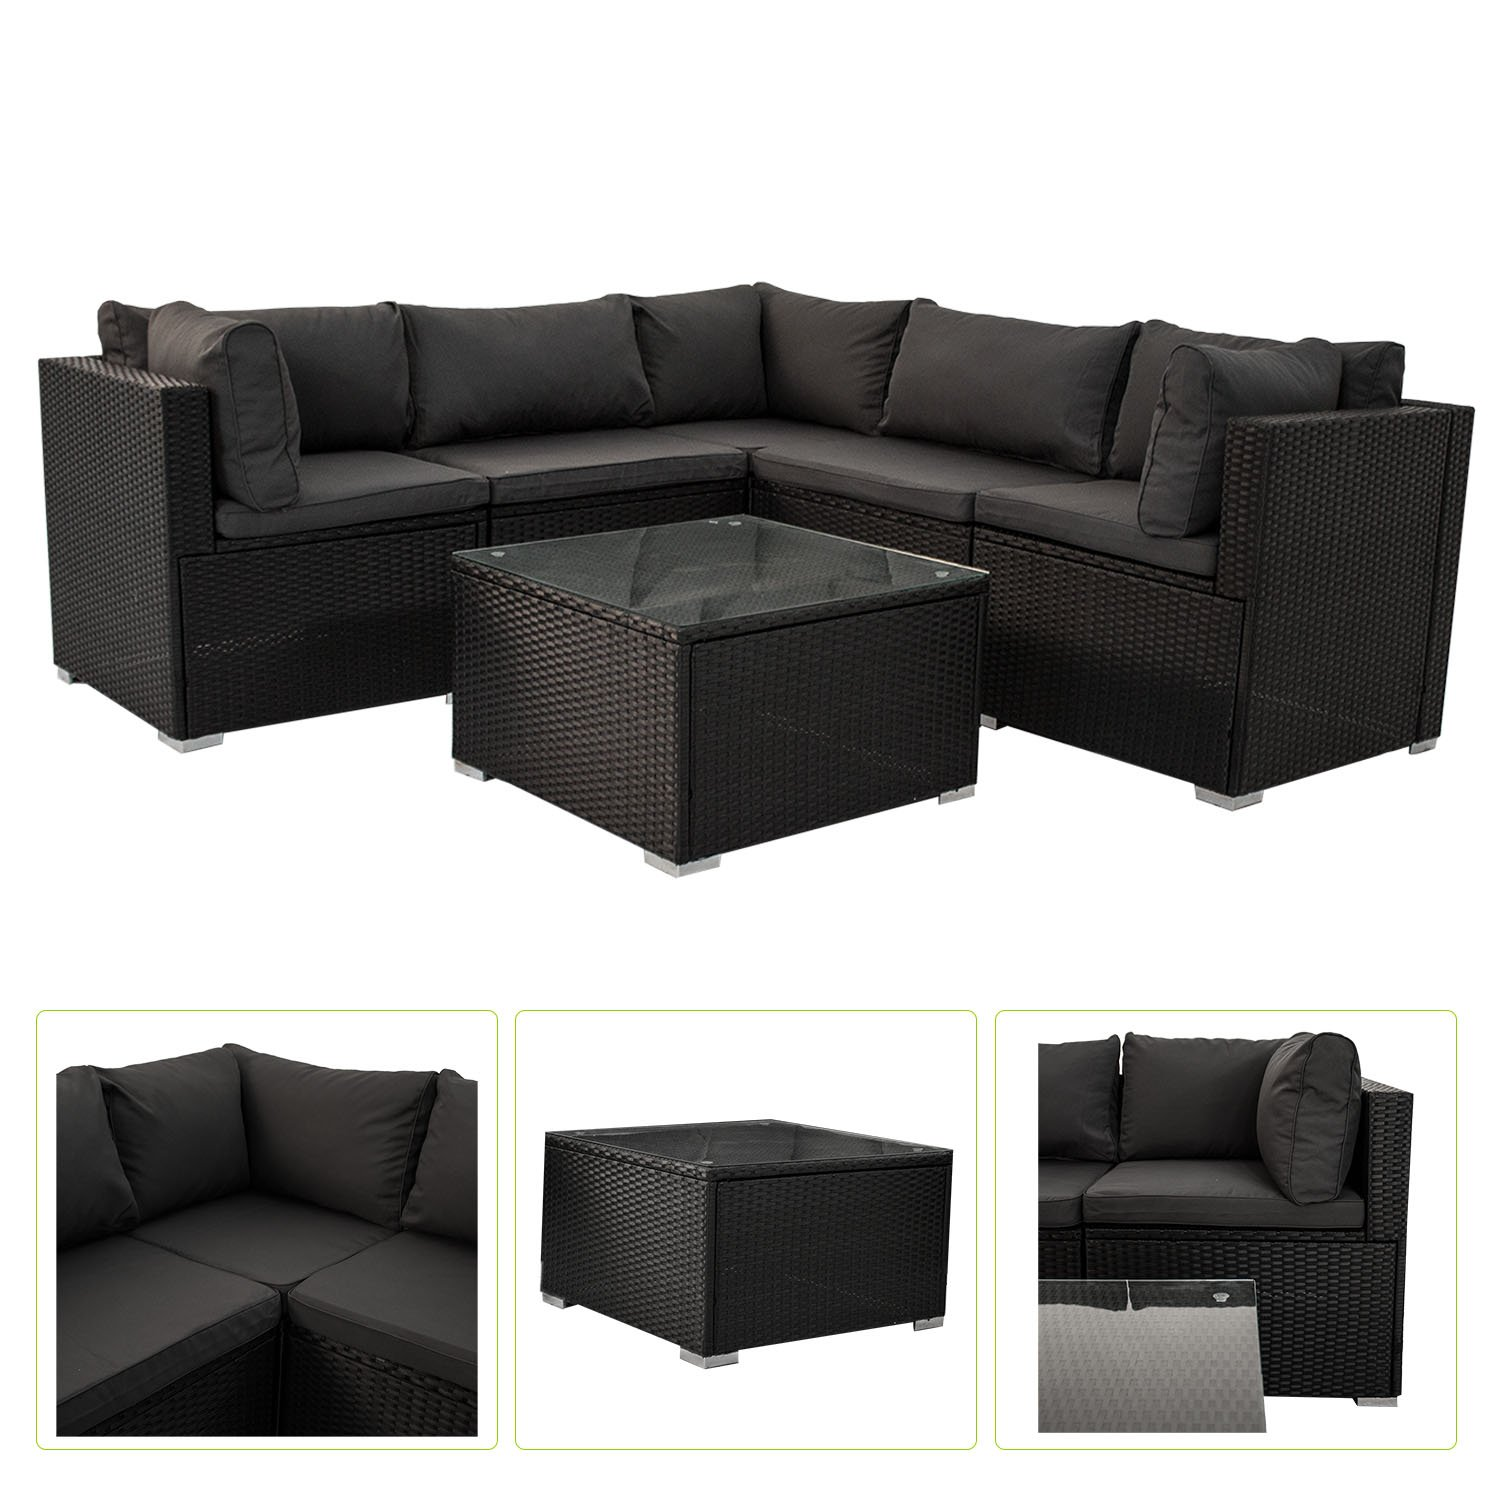 polyrattan gartenm bel lounge sitzgruppe nassau mit bez gen in dunkelgrau online kaufen. Black Bedroom Furniture Sets. Home Design Ideas